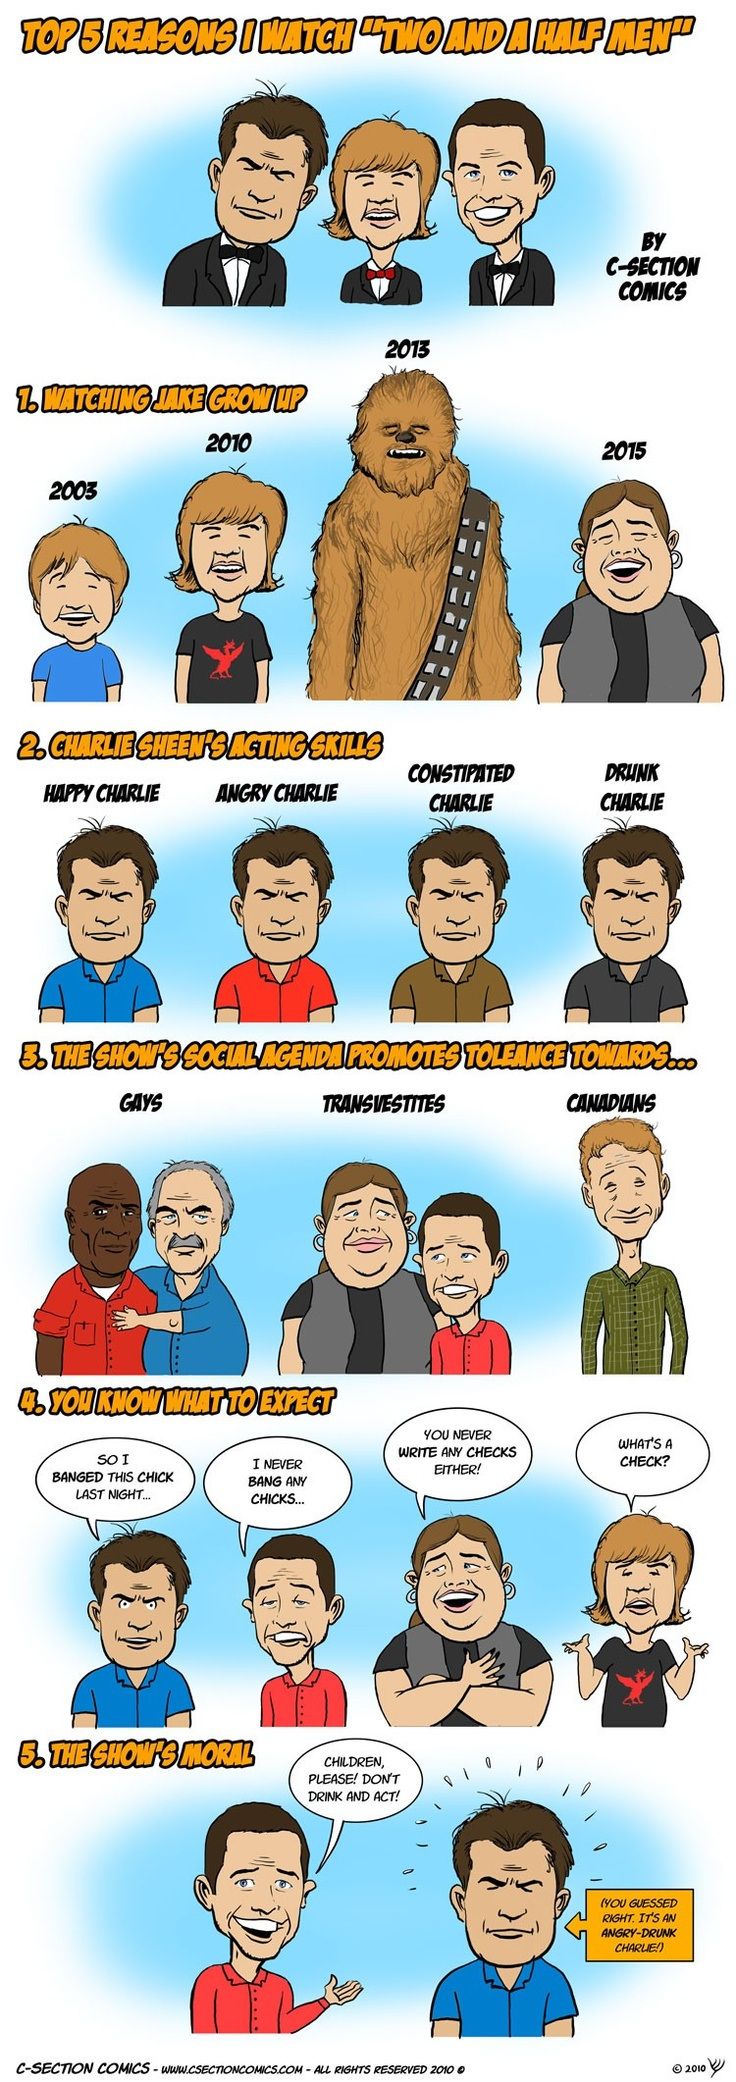 17 best images about two and a half men man cave top 5 reasons i watch two and a half men c section comics